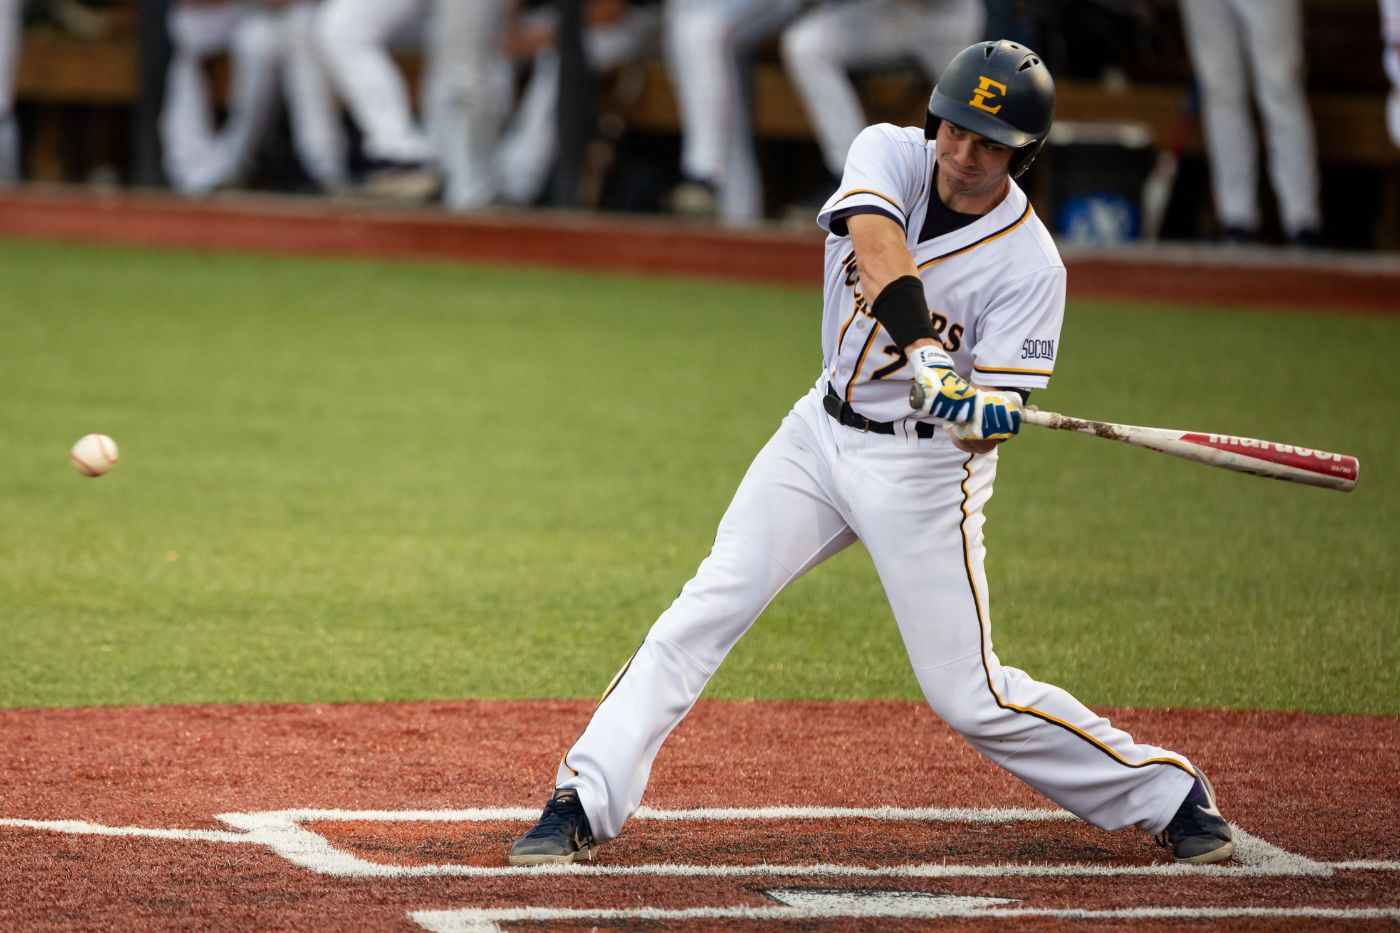 ETSU Garners Fifth Straight Opening Day Victory